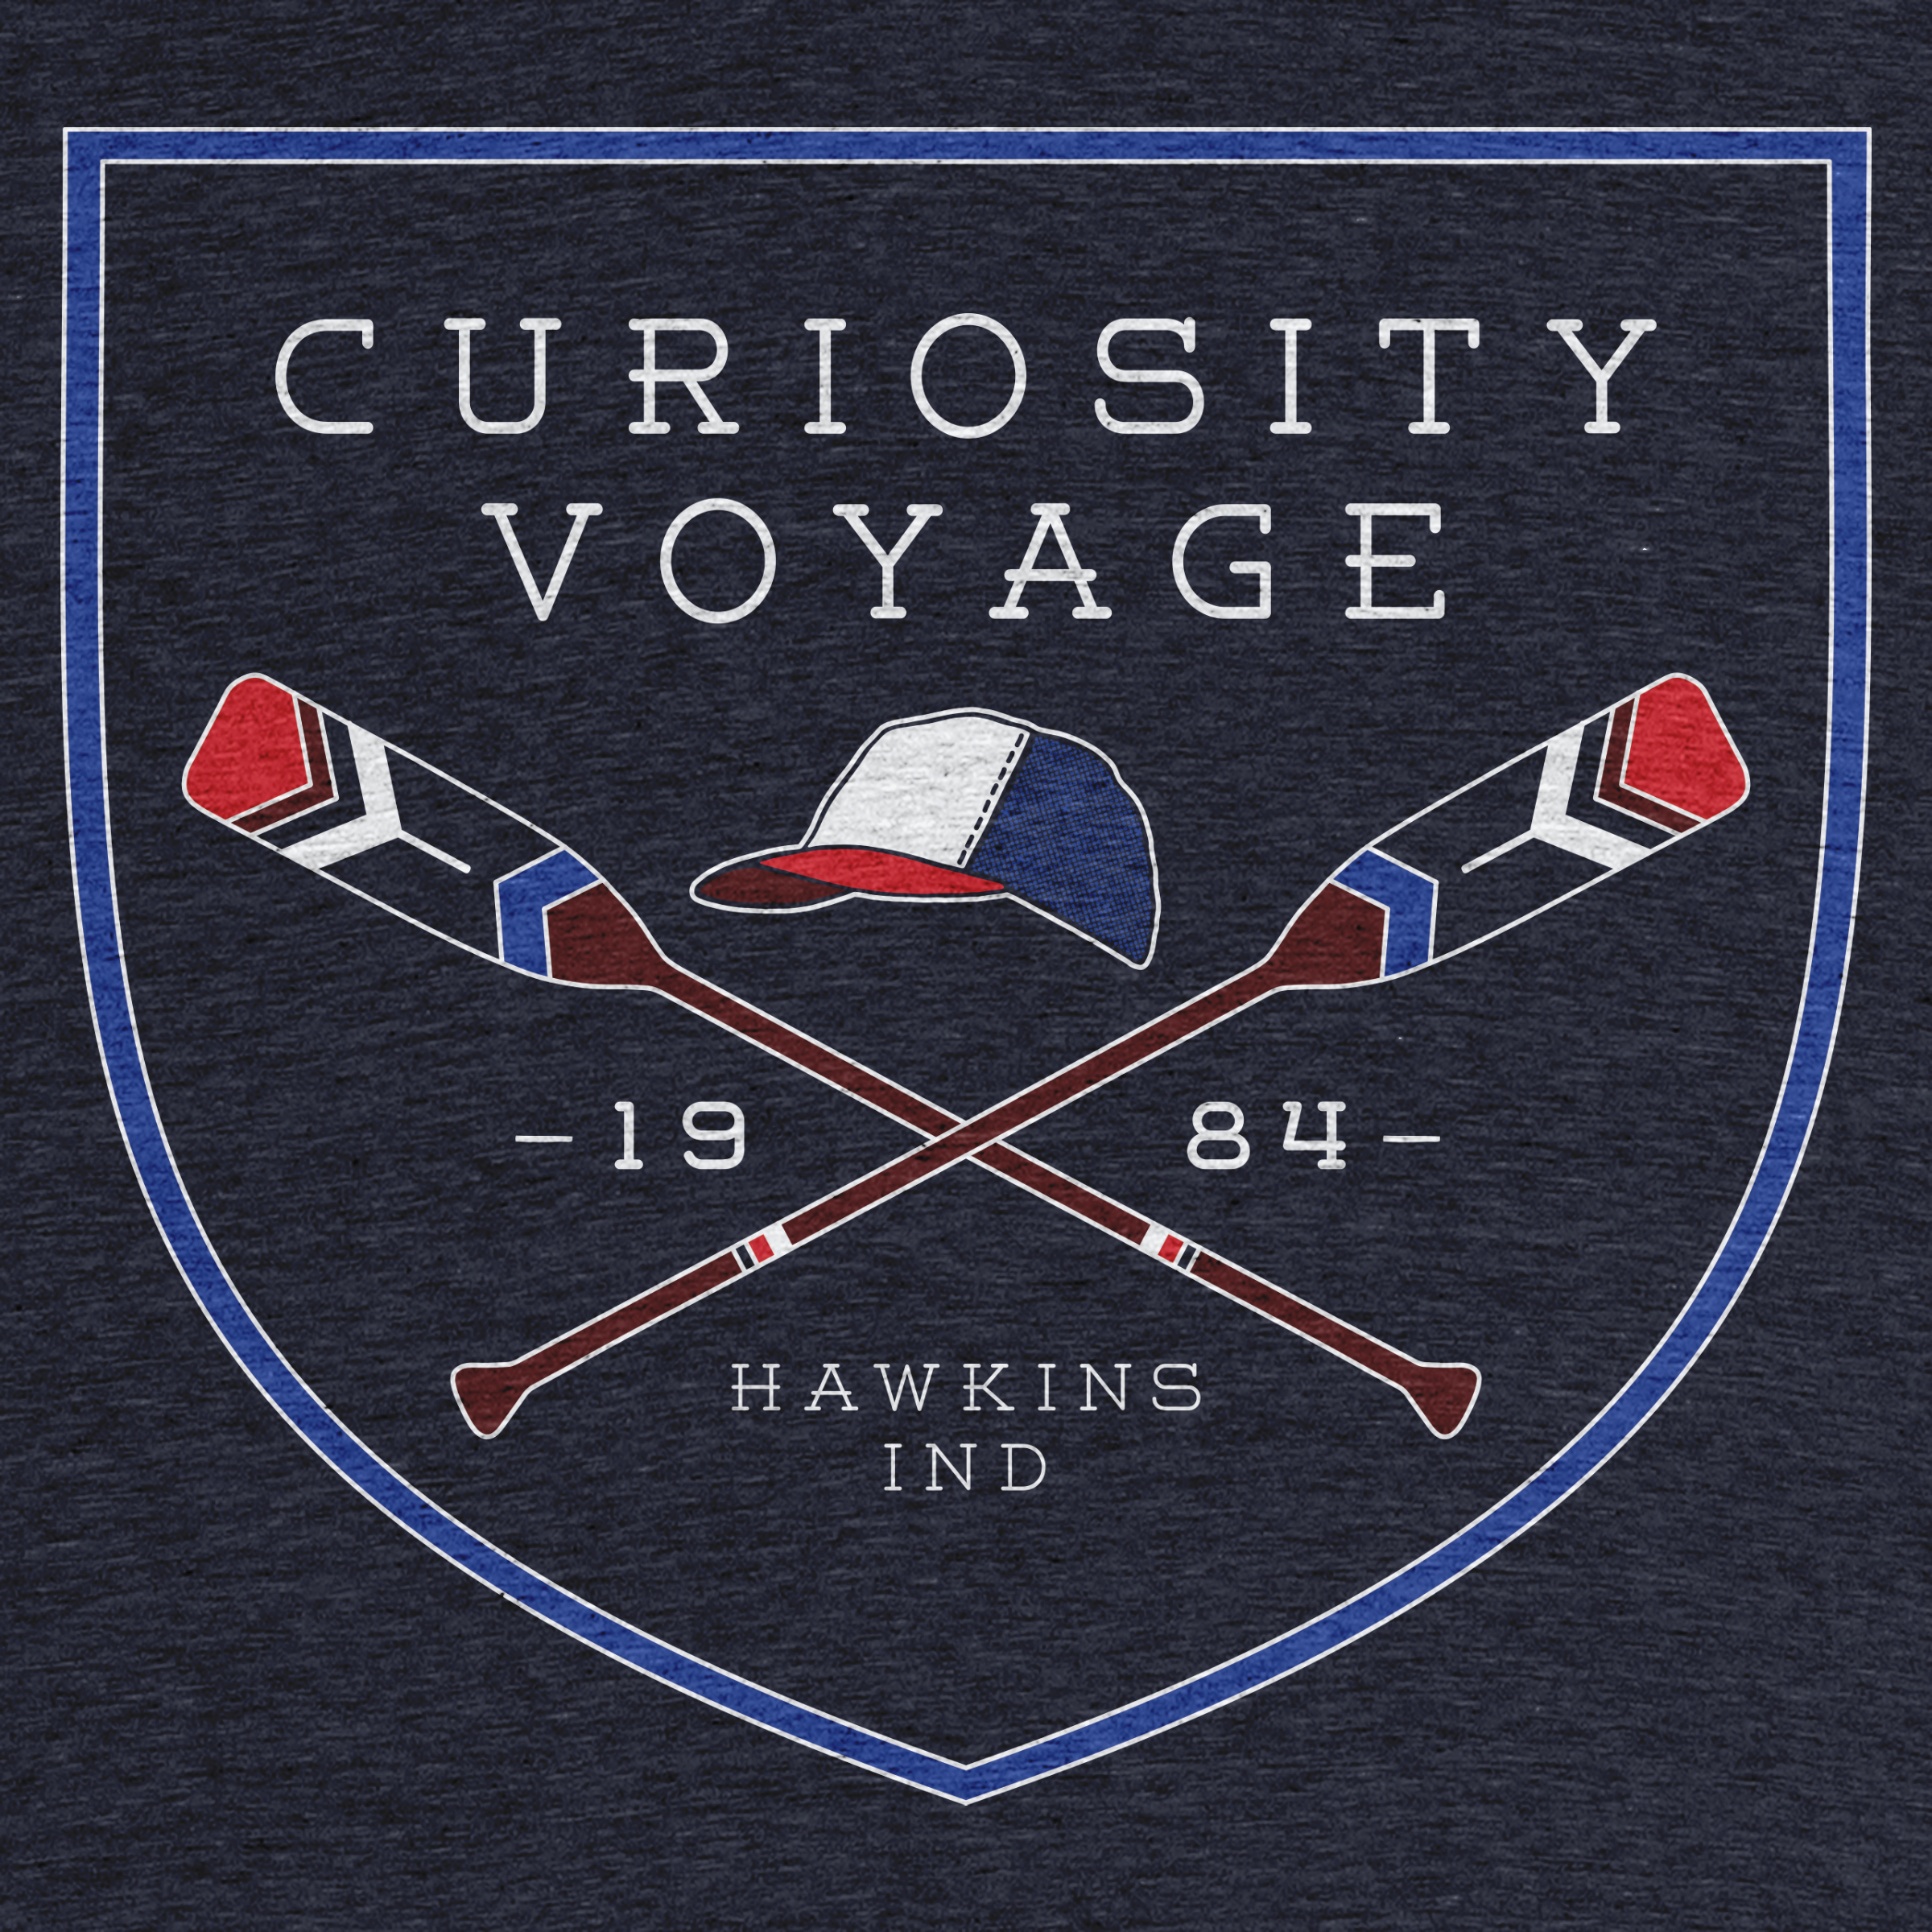 Stranger Things Curiosity Voyage 1984